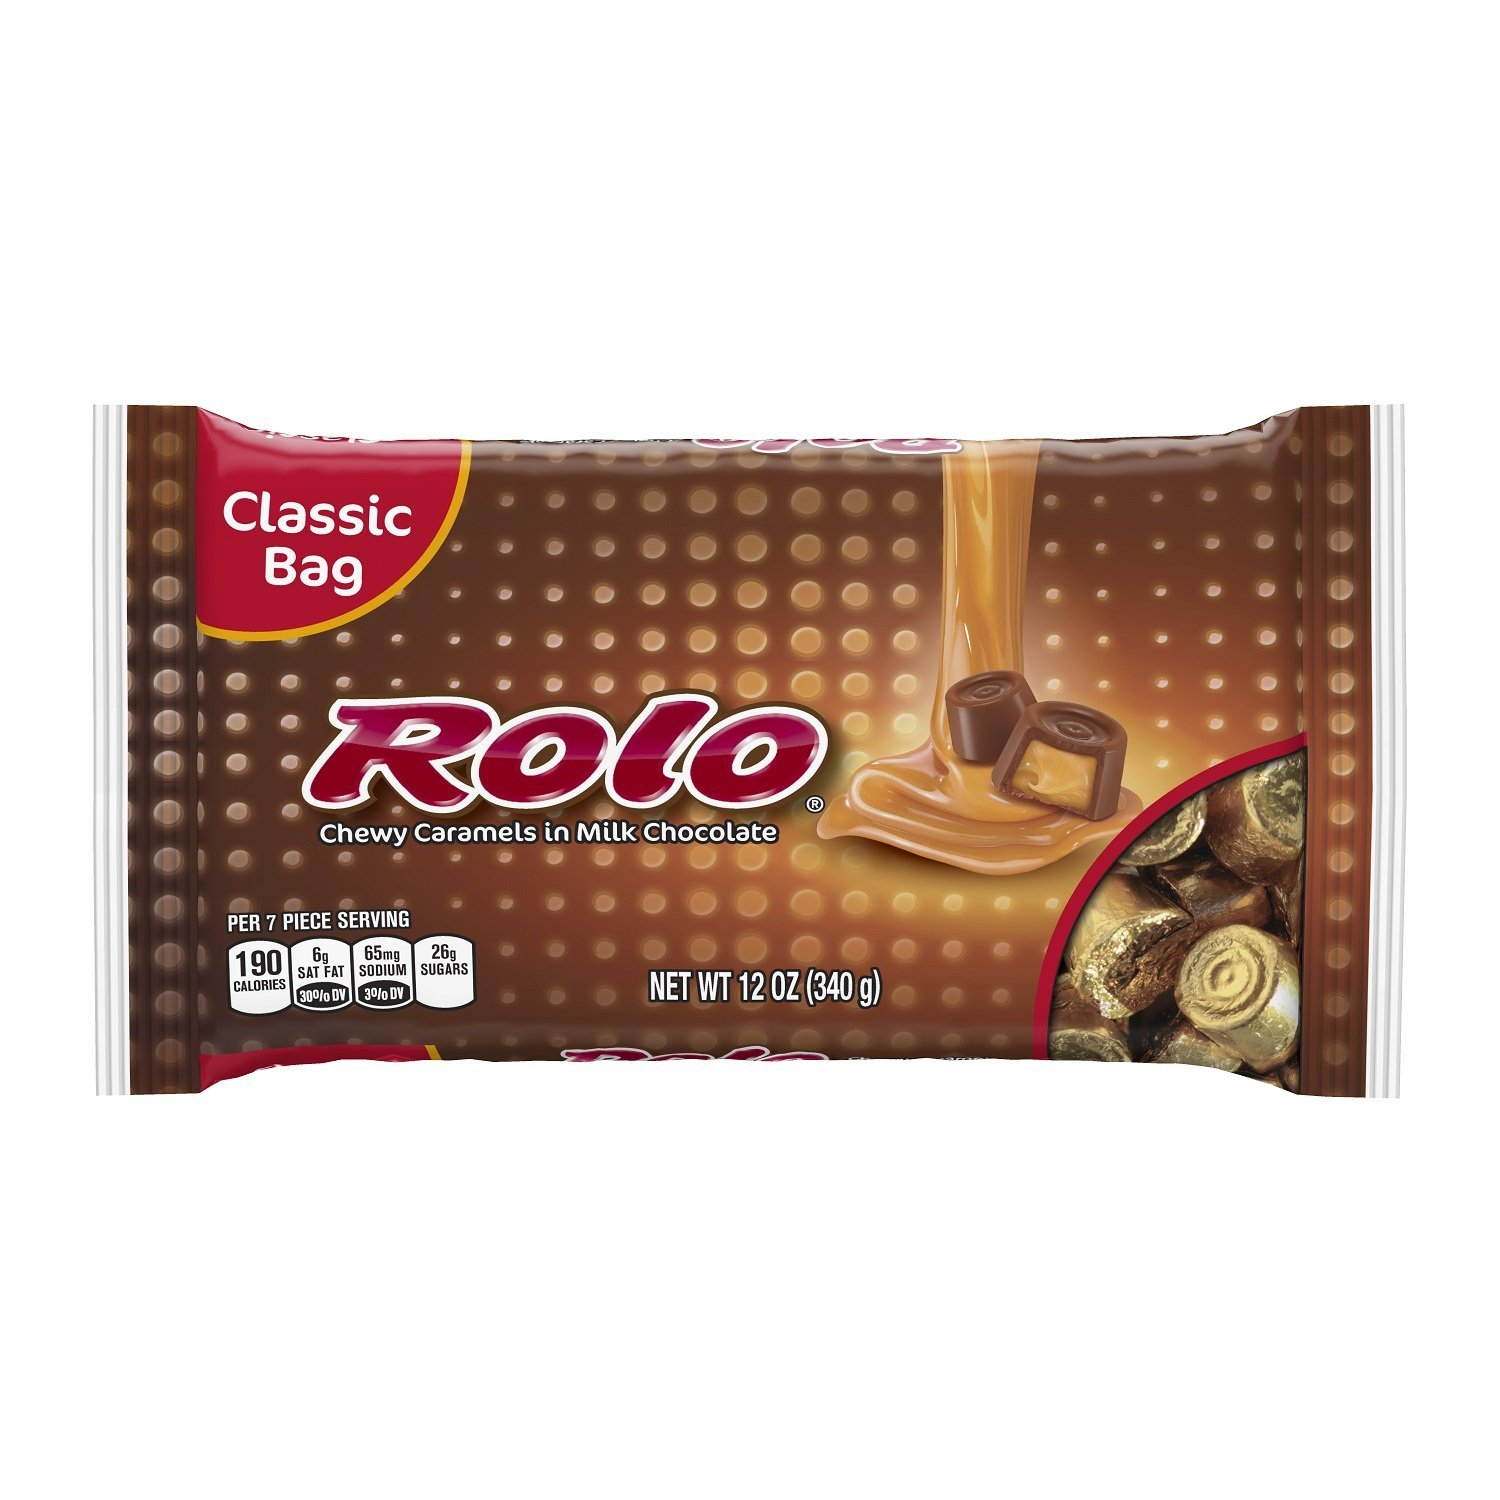 ROLO Chewy Caramels in Milk Chocolate (12-Ounce Bags, Pack of 4)